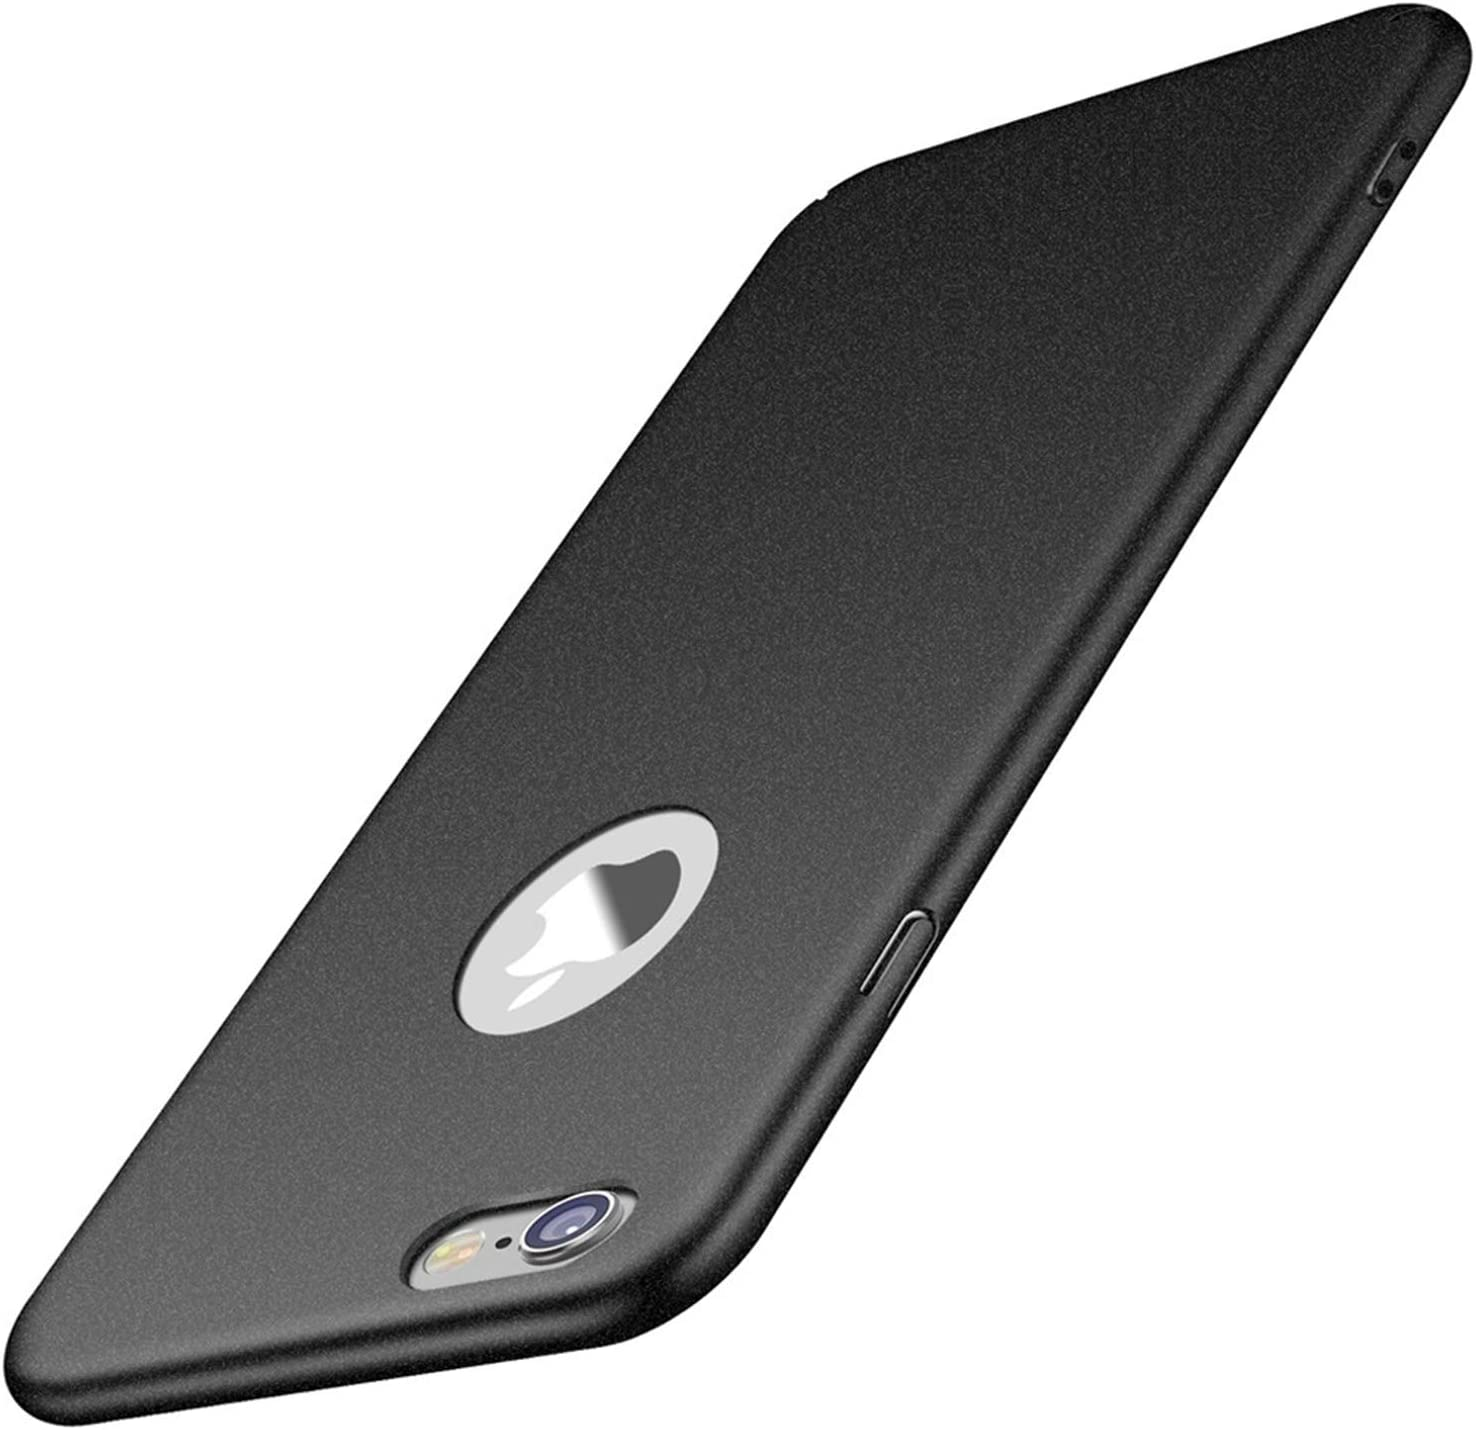 for iPhone 6s Plus/ 6 Plus case, ACMBO Minimalist [Sand Touch Feel] Ultra Thin Slim Fit Cover with Non Slip Matte Surface Hard Cases Cover for for iPhone 6 plus/6s Plus 5.5 inch, Gravel Black